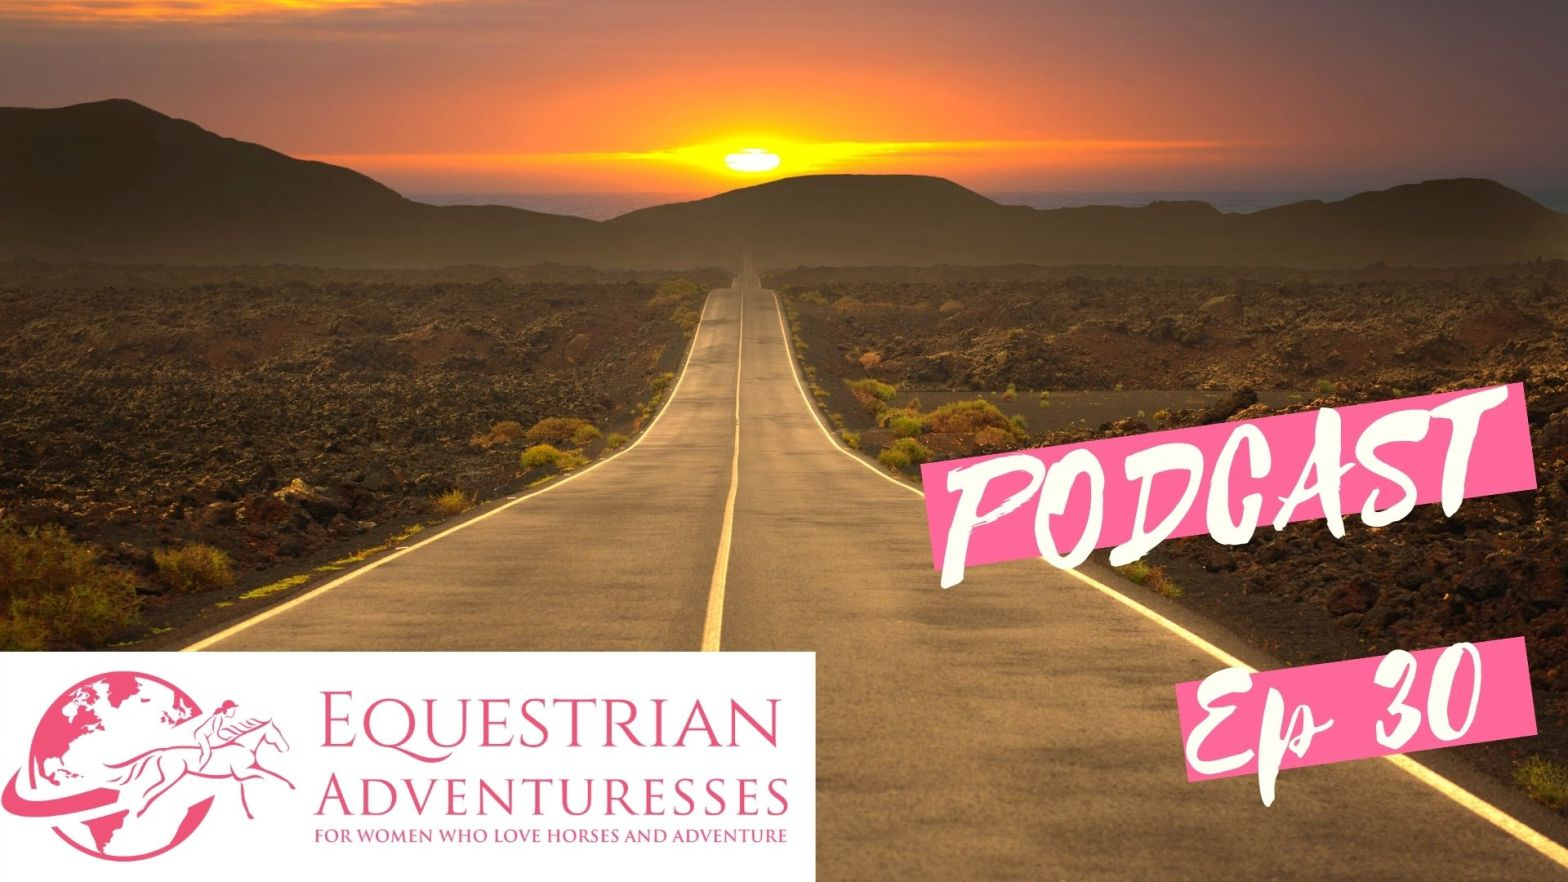 Equestrian Adventuresses Travel and Horse Podcast Ep 30 - featured: How Corona is affecting the way we travel and live and how we mange the best way possible